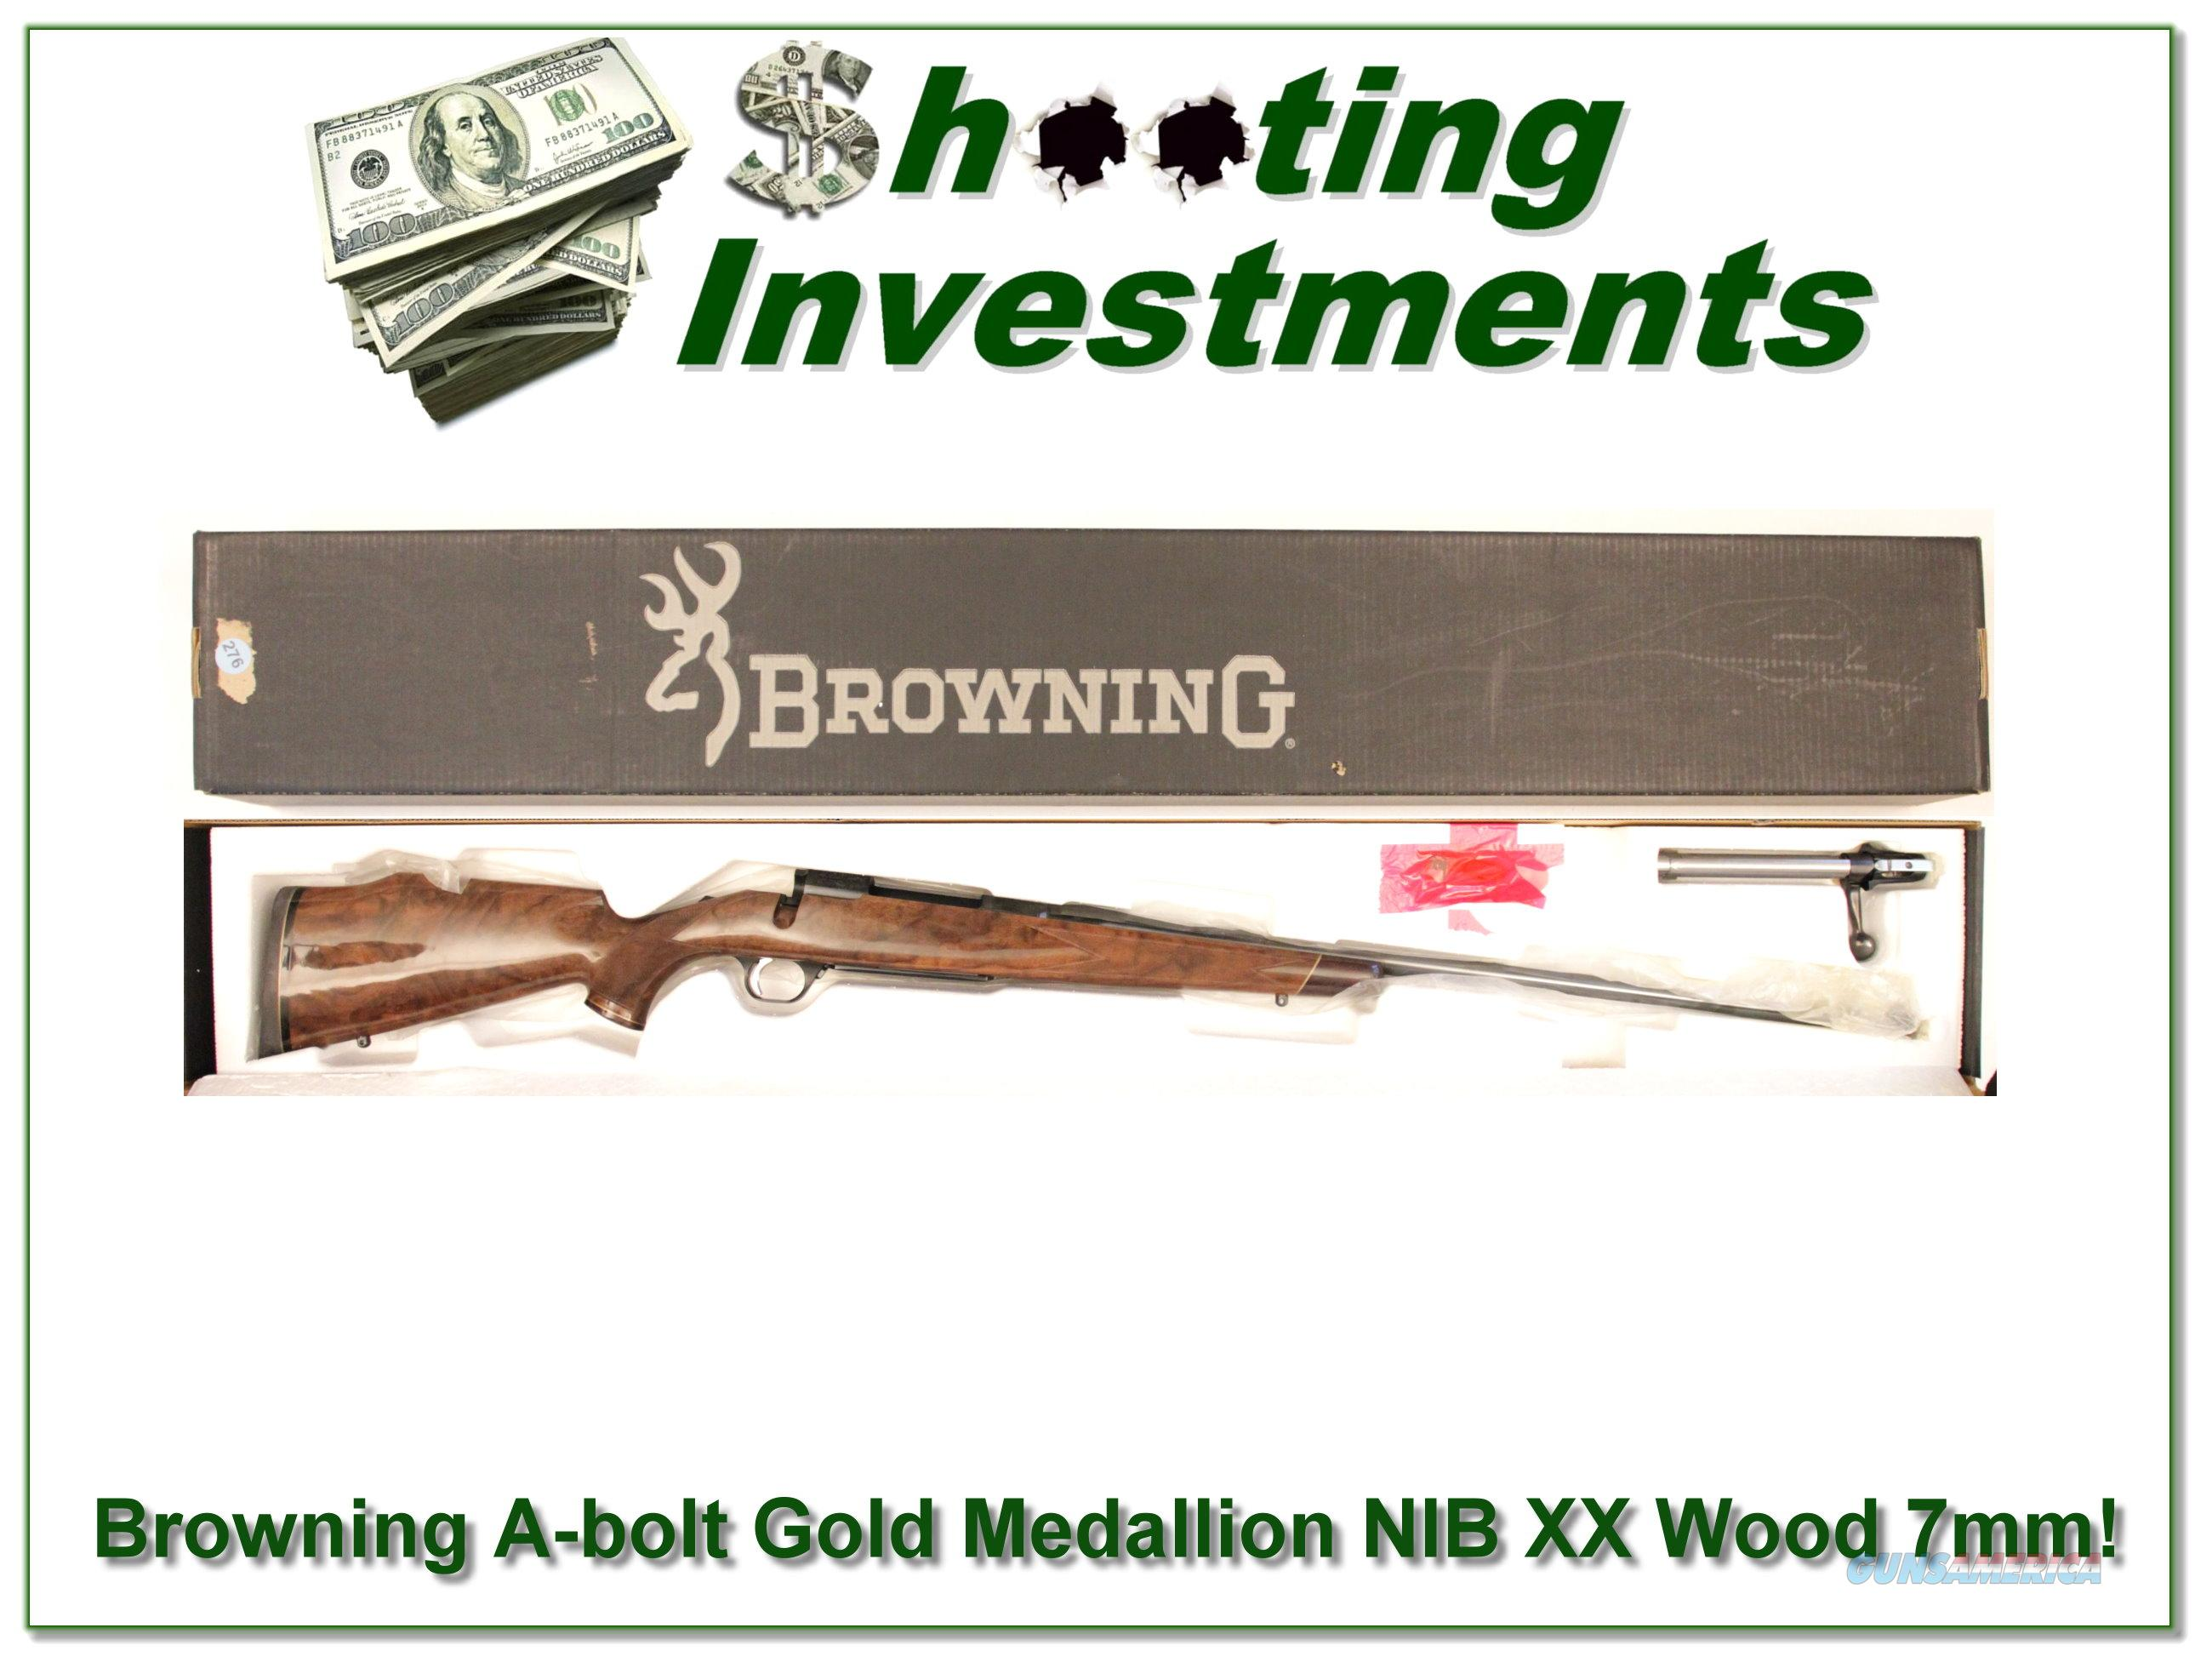 Browning A-bolt Gold Medallion 7mm NIB XXX Wood!  Guns > Rifles > Browning Rifles > Bolt Action > Hunting > Blue